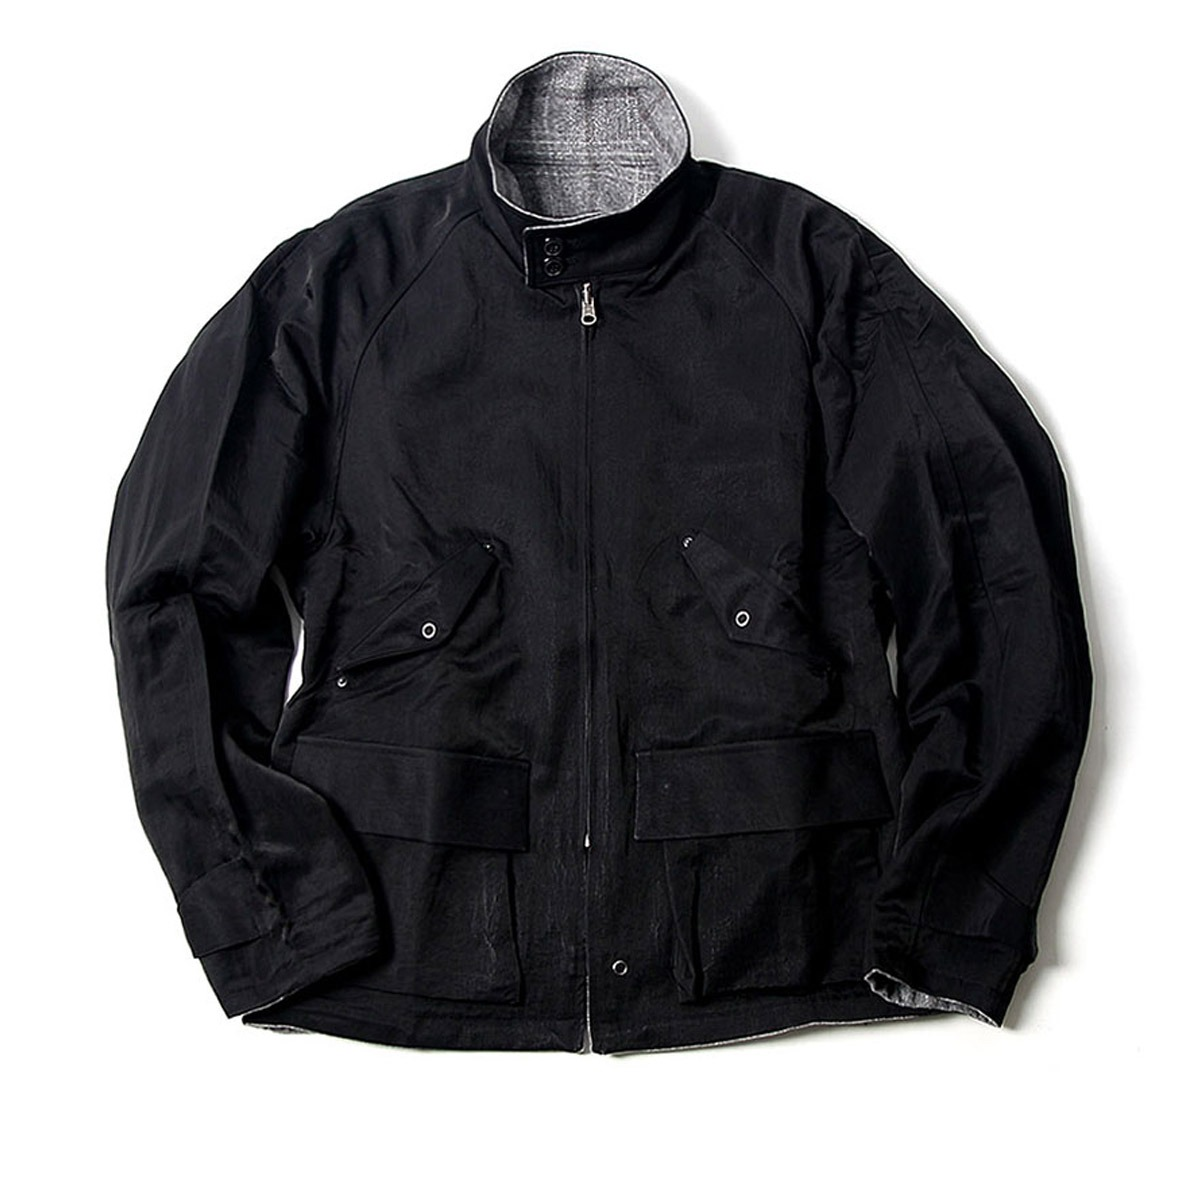 [BEHEAVYER] BHR TWO FACE BLOUSON 'BLACK'